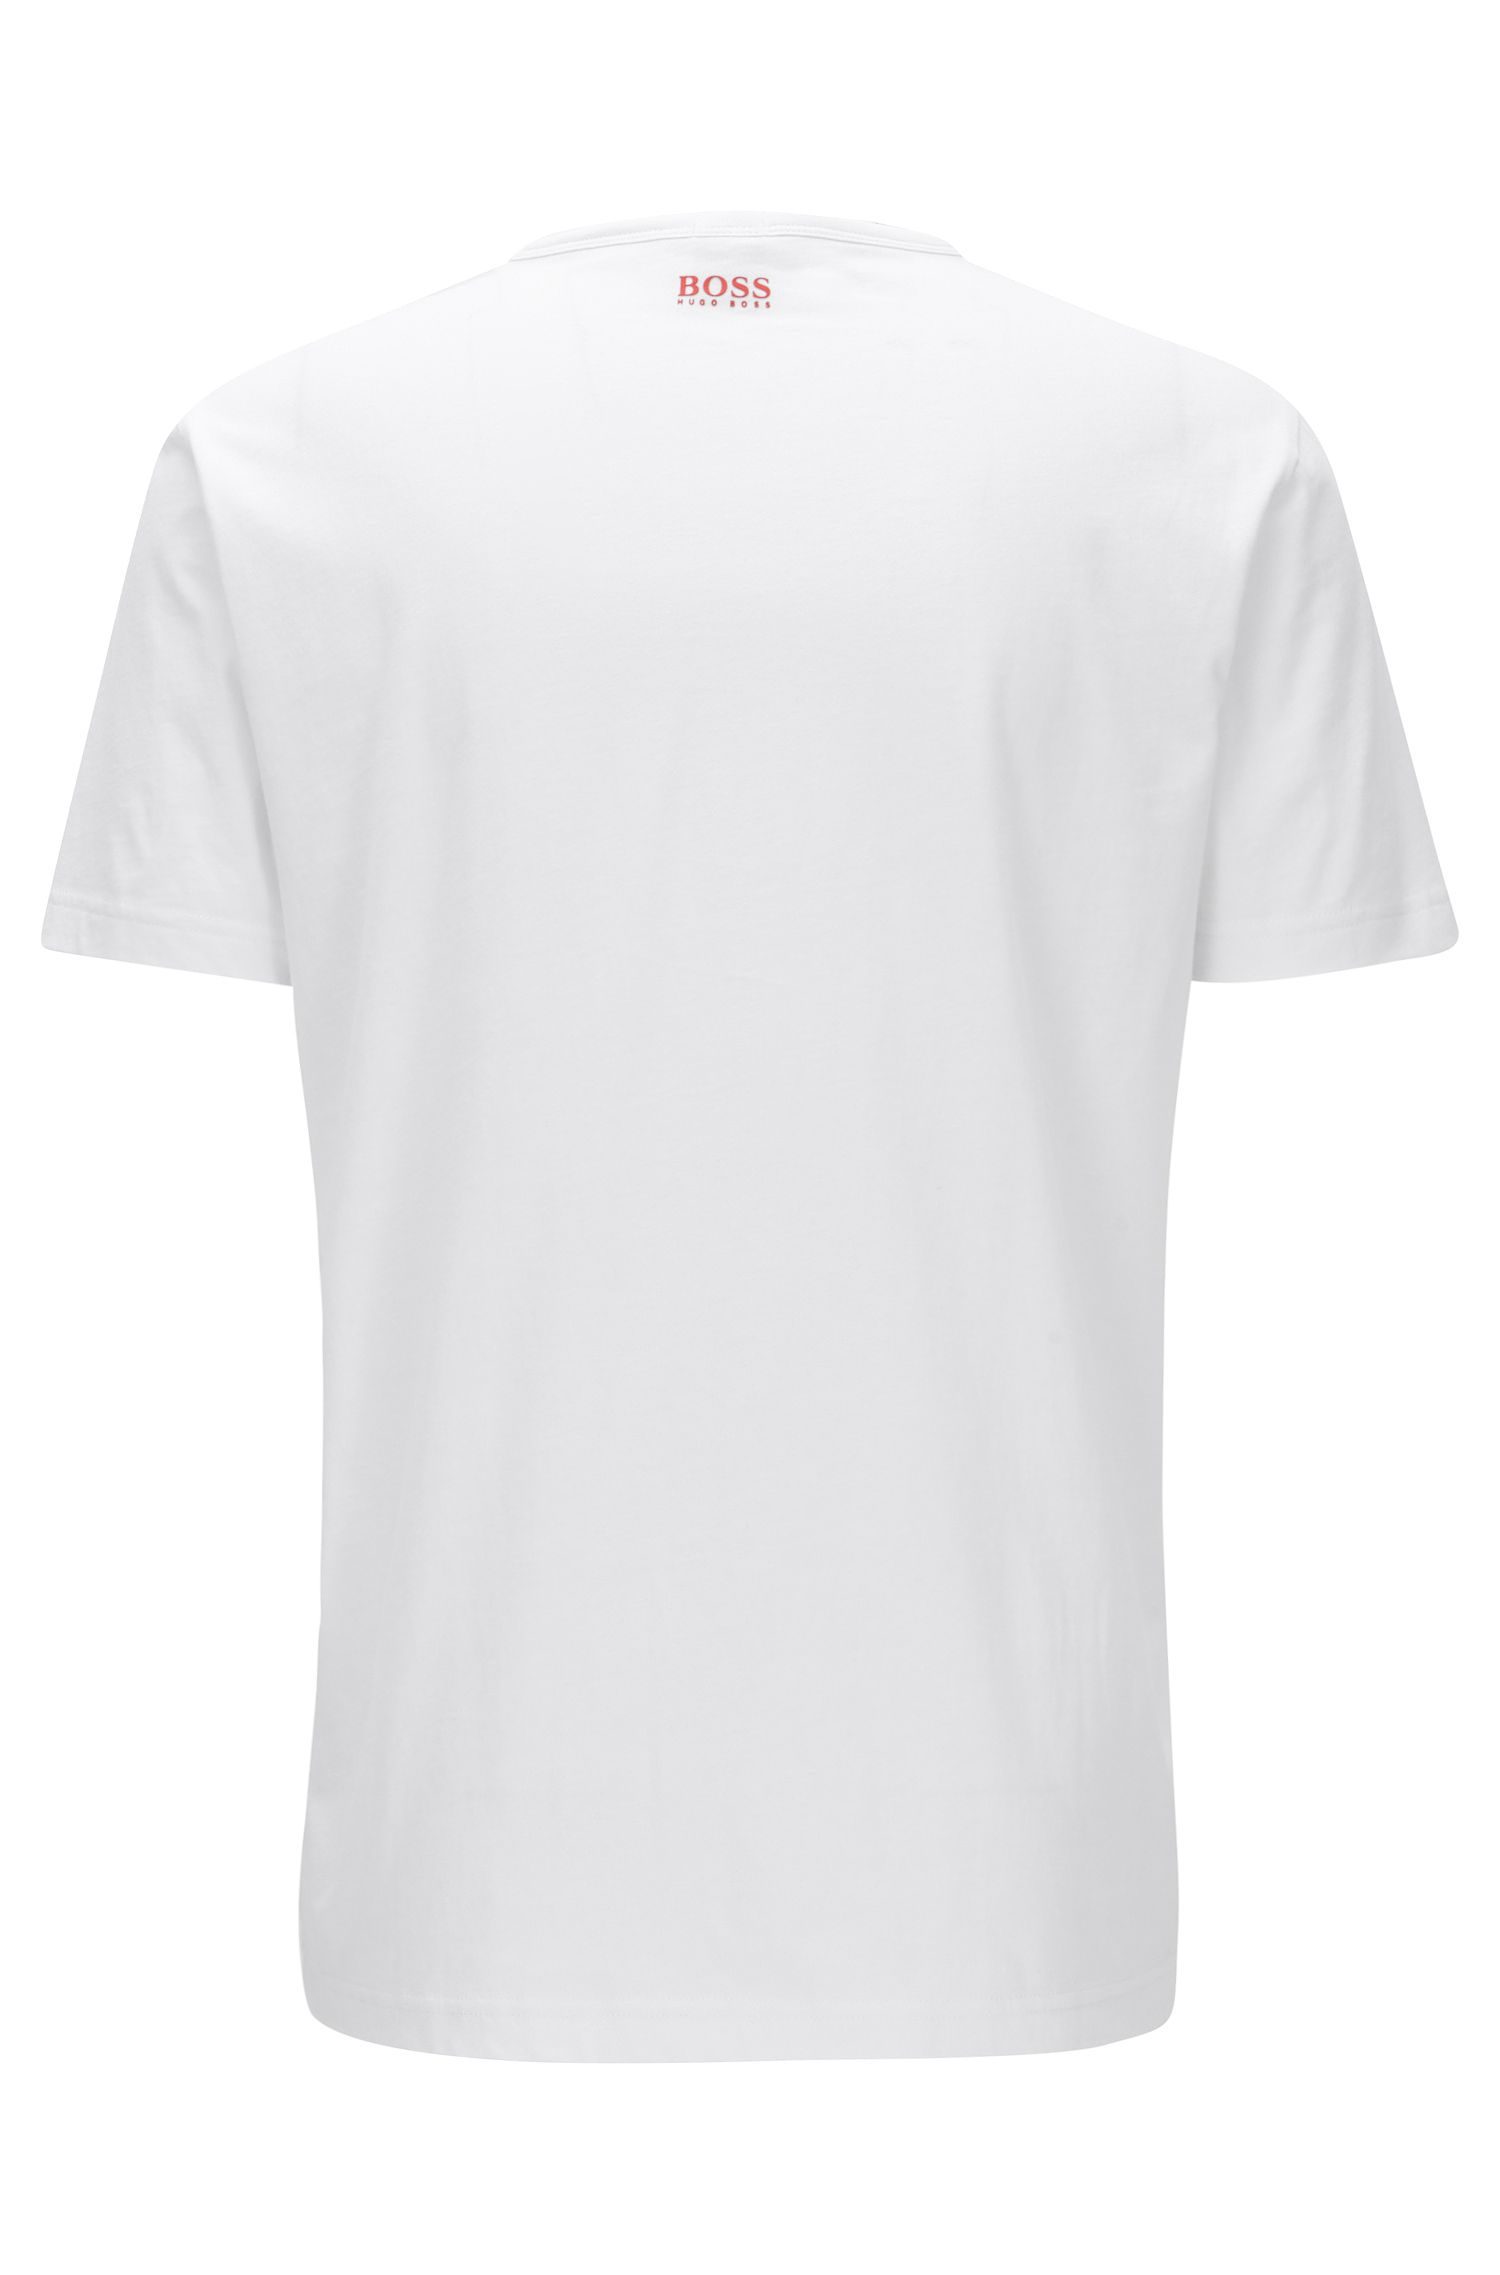 Regular-Fit T-Shirt aus reiner Baumwolle mit Logo